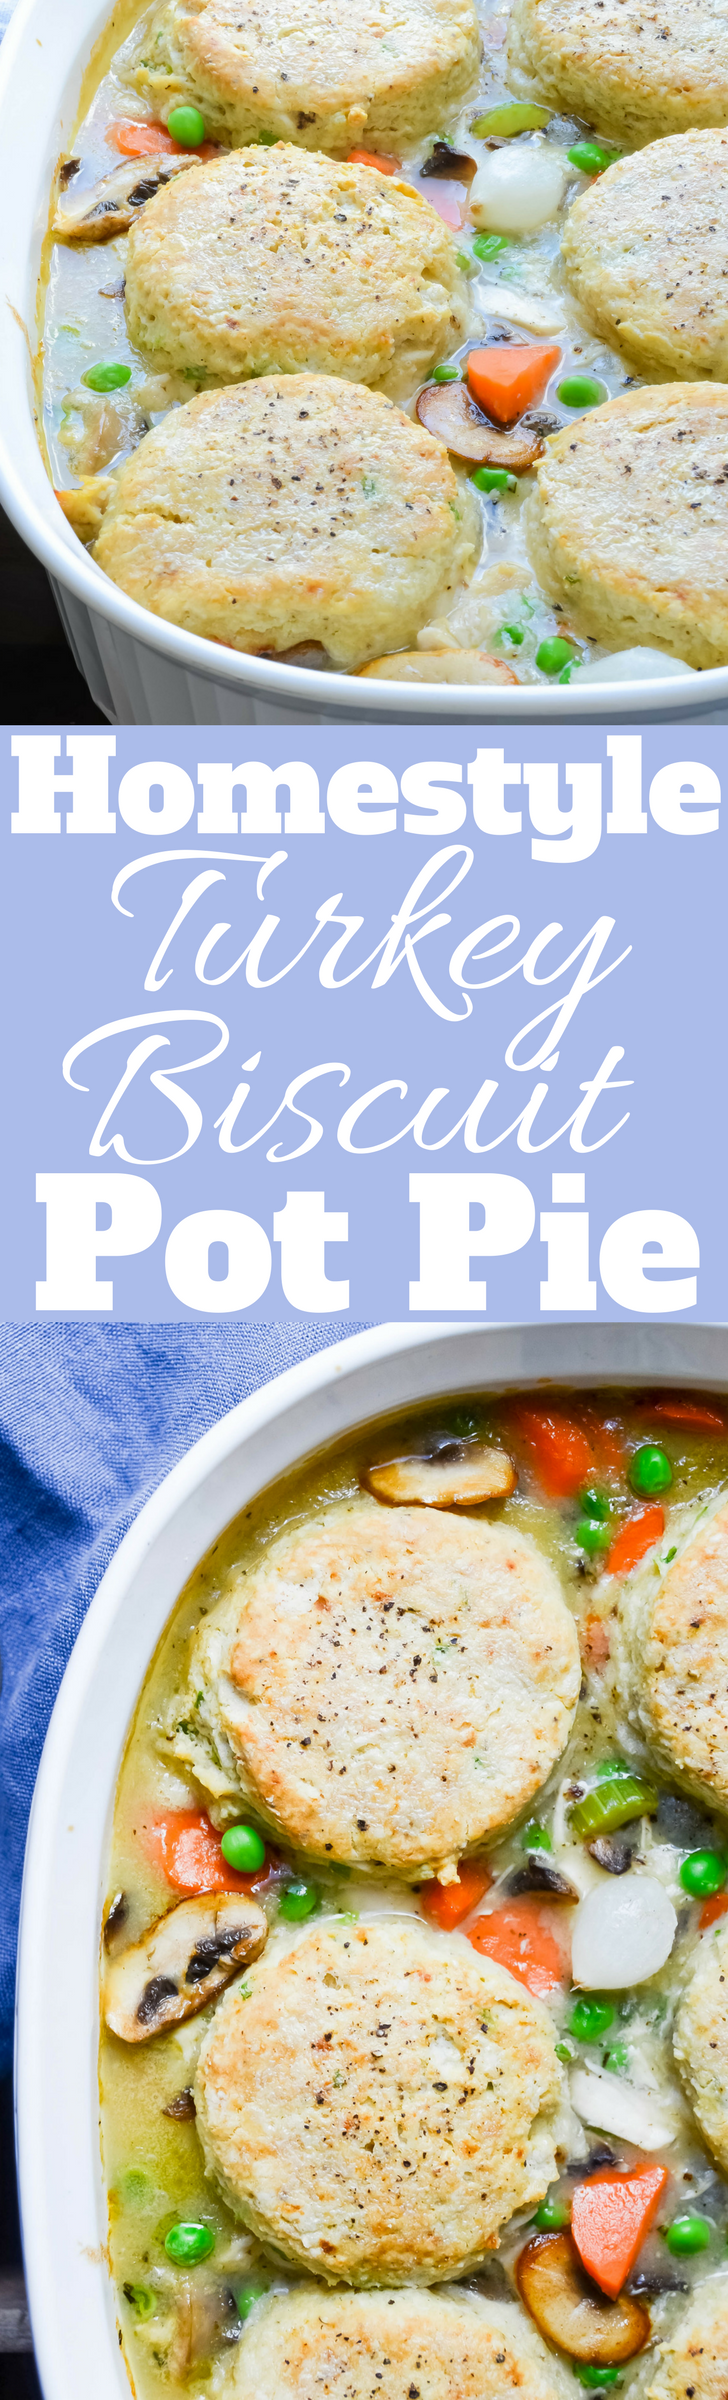 Use leftover turkey or chicken in this easy recipe for Turkey and Pepper-Biscuit Pot Pie.  It's the ultimate comfort food!